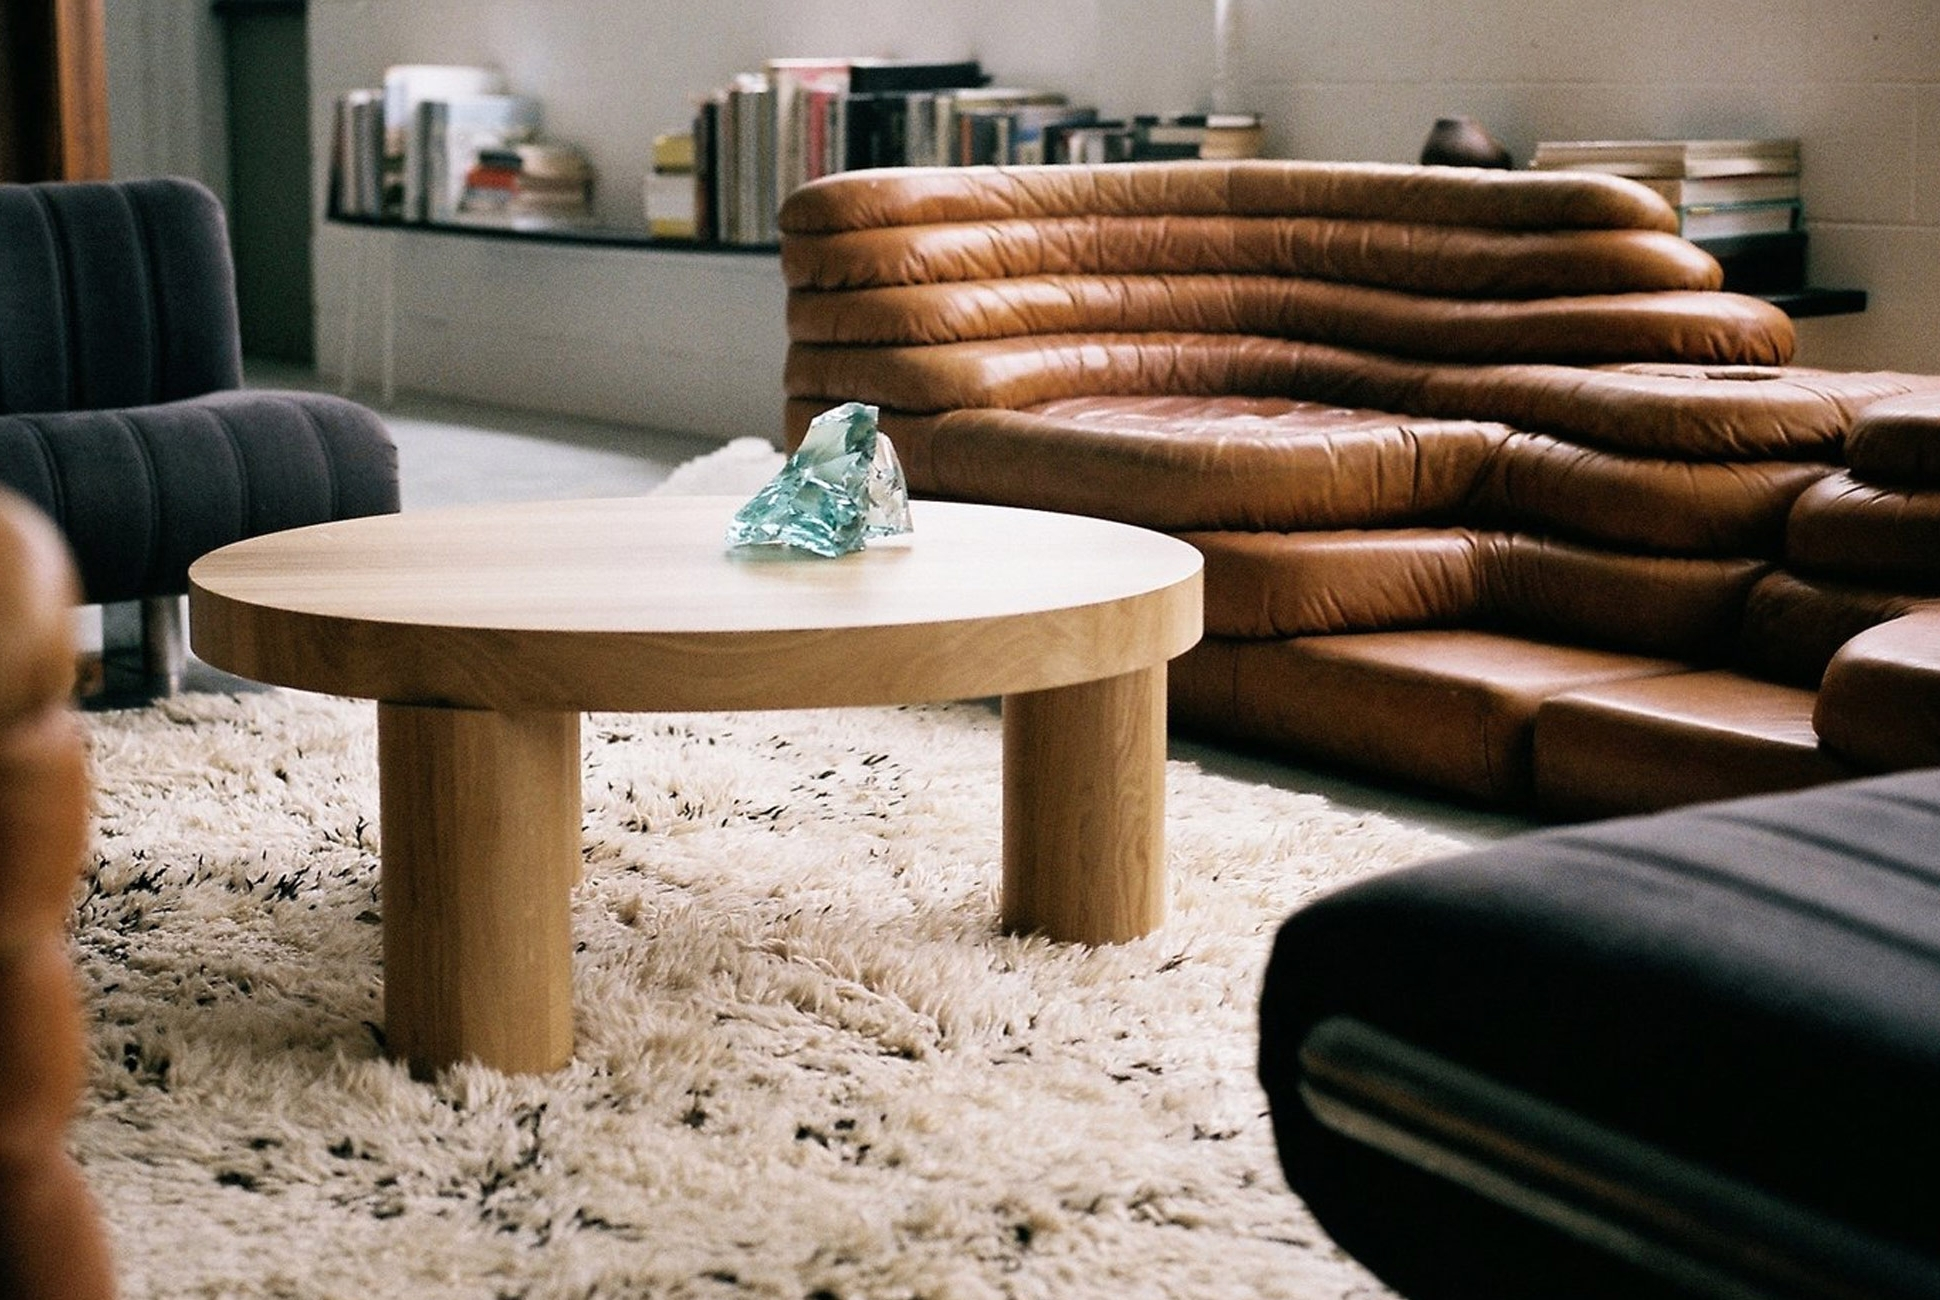 The Best Coffee Tables For Every Budget And Style With Regard To Most Up To Date Shroom Coffee Tables (View 19 of 20)